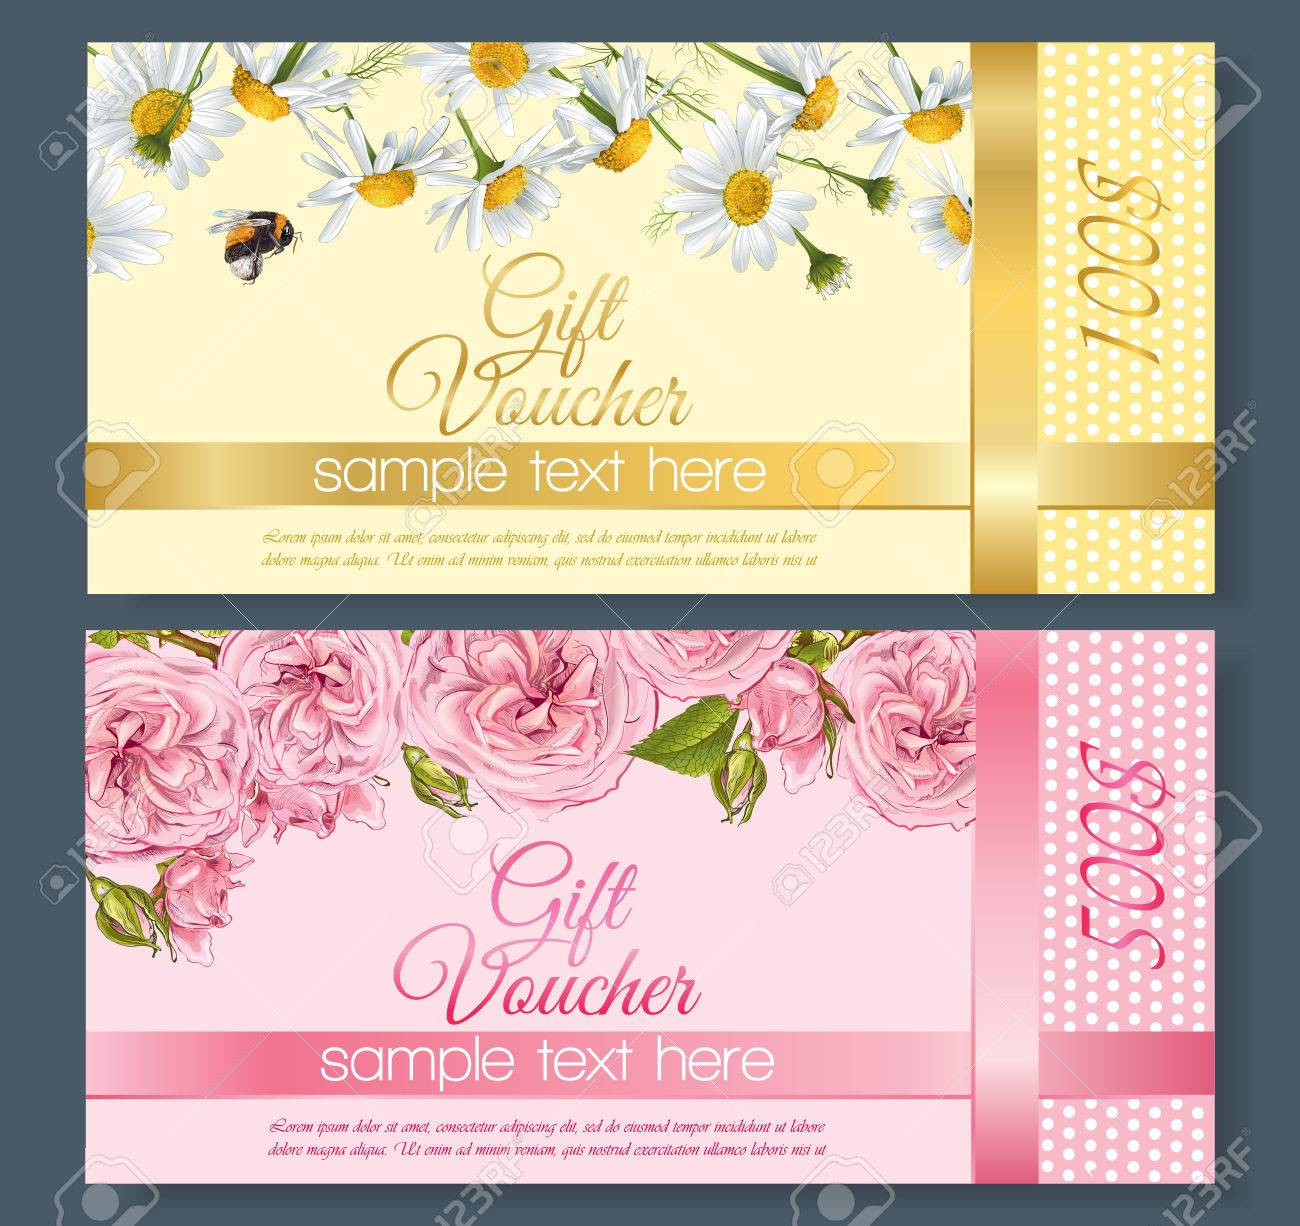 Natural Cosmetics Gift Vouchers With Flowers Design For Cosmetics Royalty Free Cliparts Vectors And Stock Illustration Image 64576571